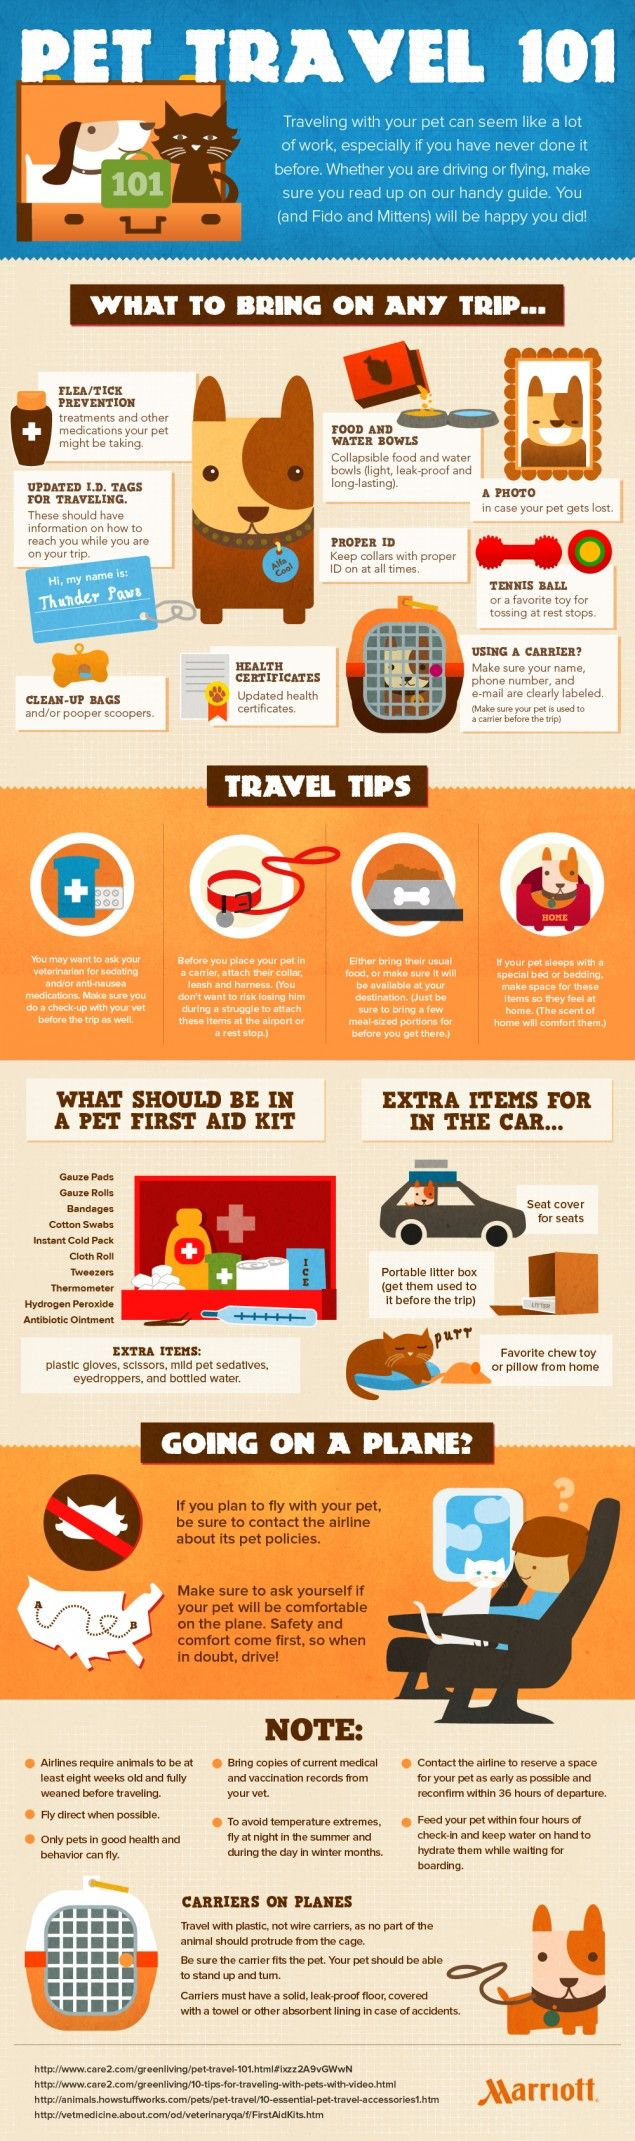 As the weather warms up and we start to travel more, it is important to think about your pet's safety and comfort.  Here are some tips to help you prepare for vacationing with your furry friends! www.SPCAmc.org